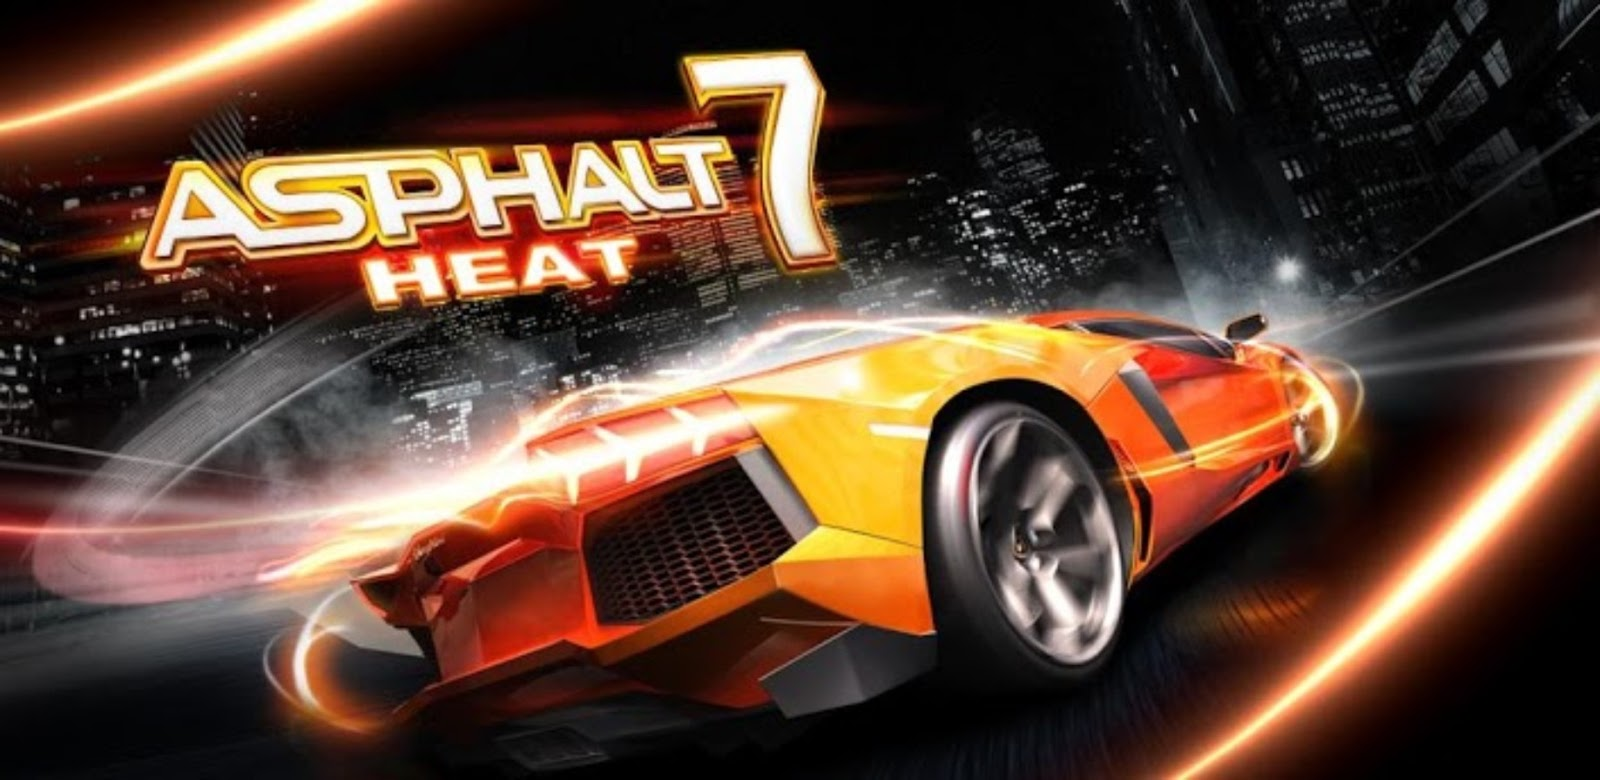 Free Download Asphalt 7: Heat v1.0.4 APK + SD DATA for Android